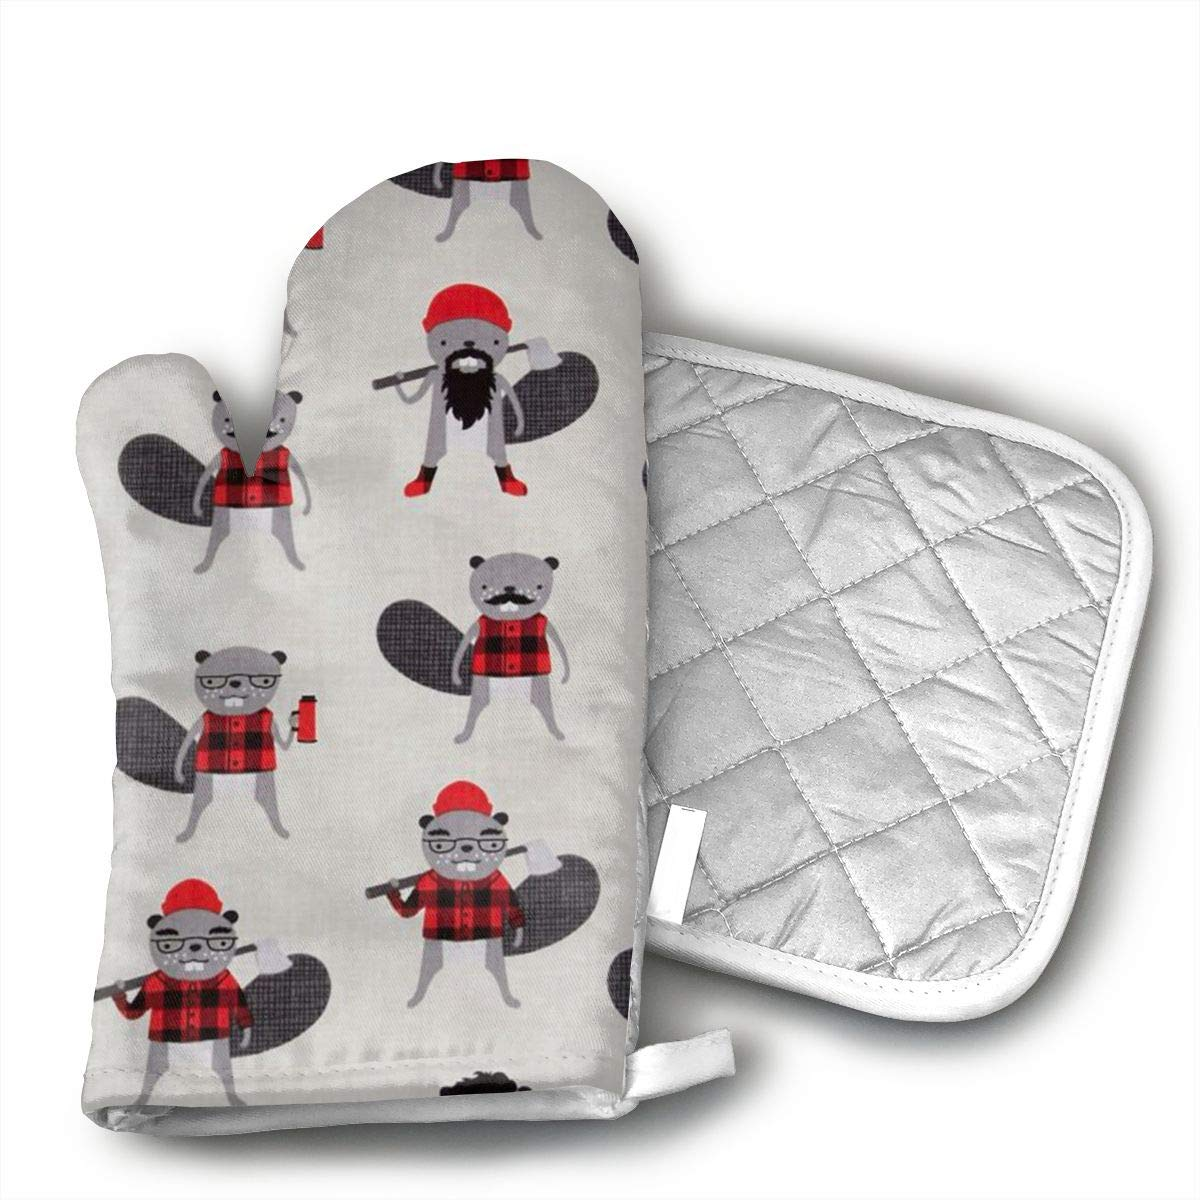 Ubnz17X Burly Beavers Oven Mitts and Pot Holders for Kitchen Set with Cotton Non-Slip Grip,Heat Resistant